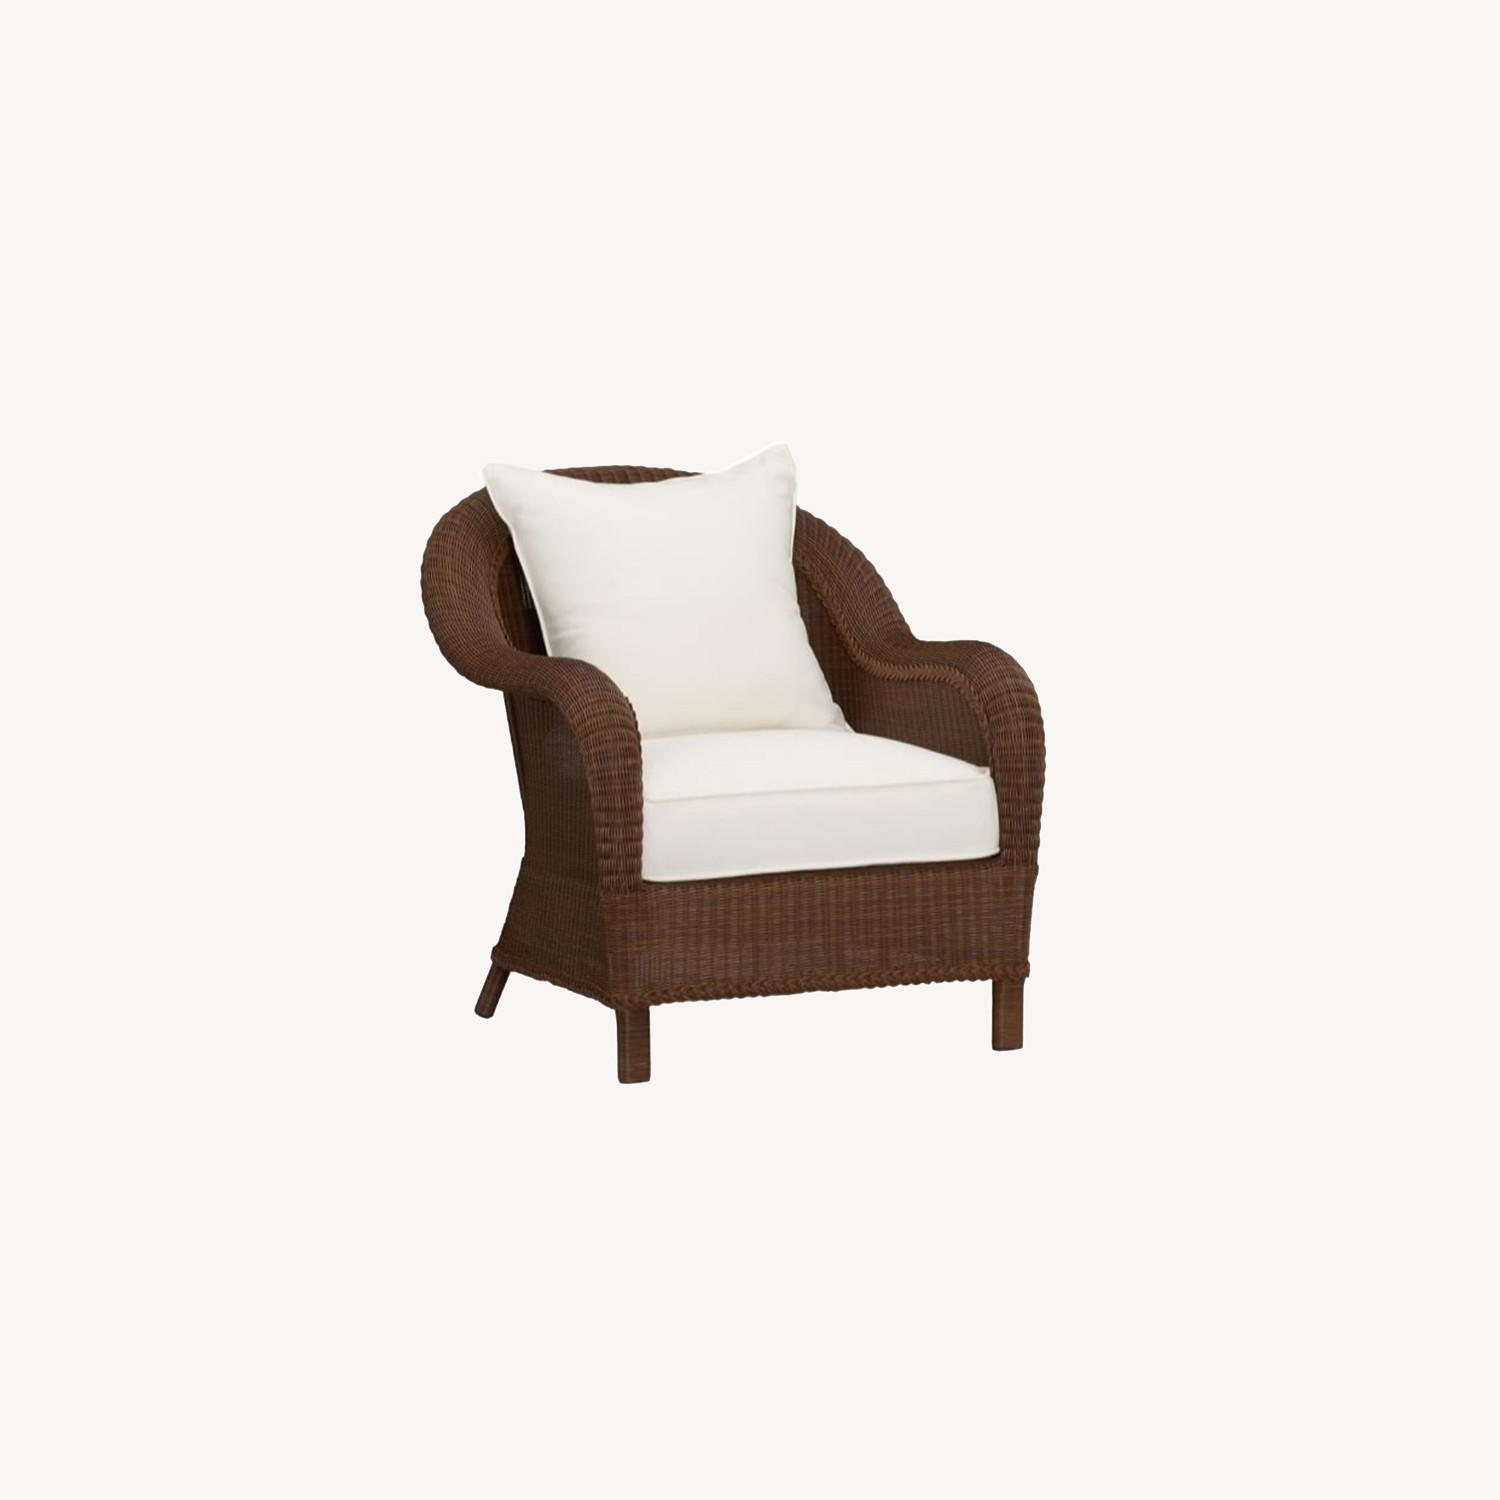 Pottery Barn Palmetto All-Weather Wicker Chair - image-0